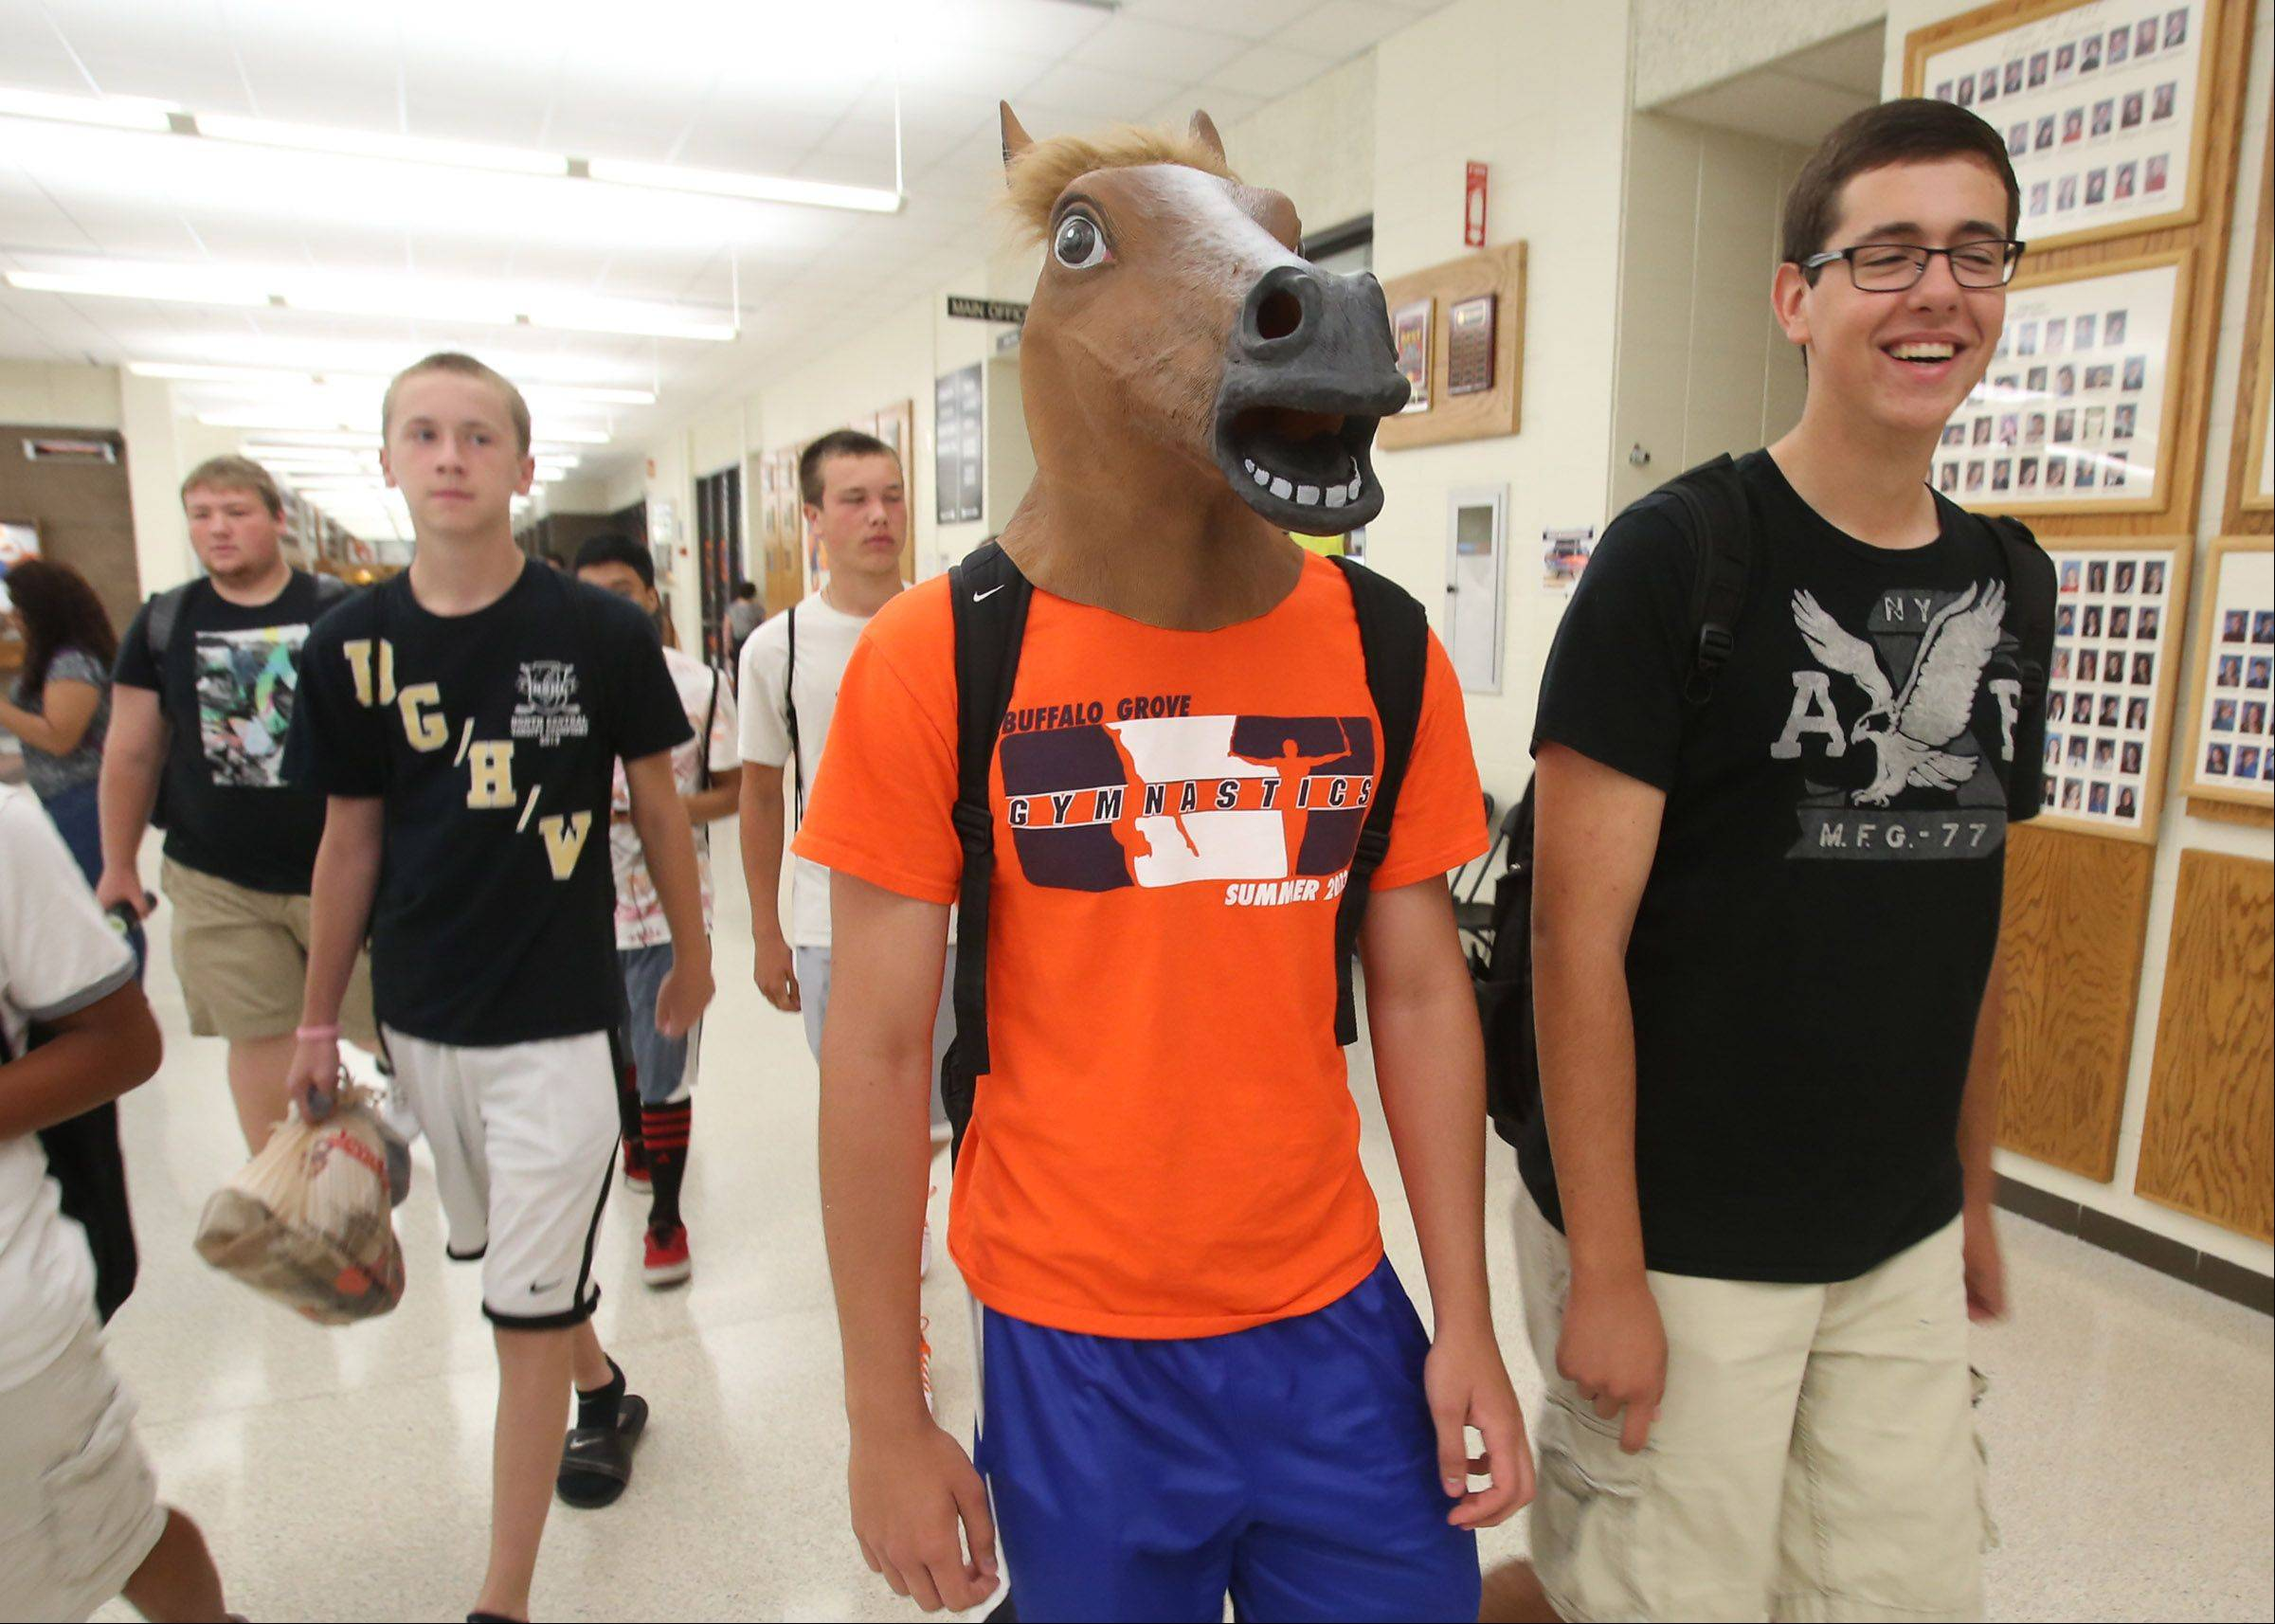 Senior Milan Davitkov showed up to BGHS wearing a horse head. (He was asked to remove it before going into class).